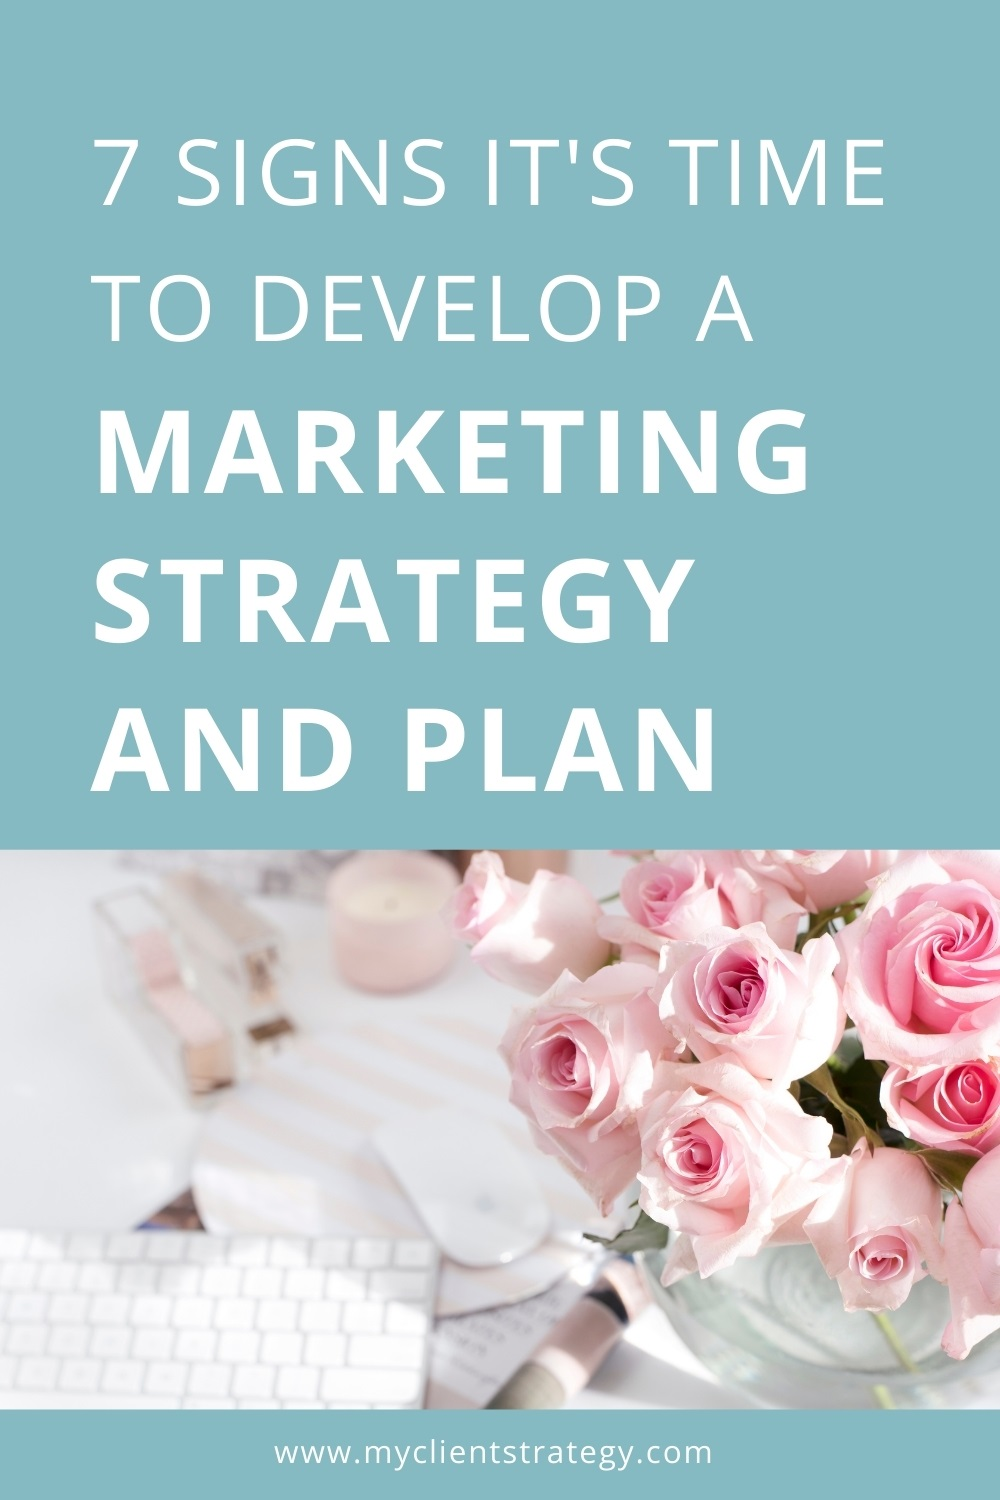 7 signs its time to develop a marketing strategy and plan